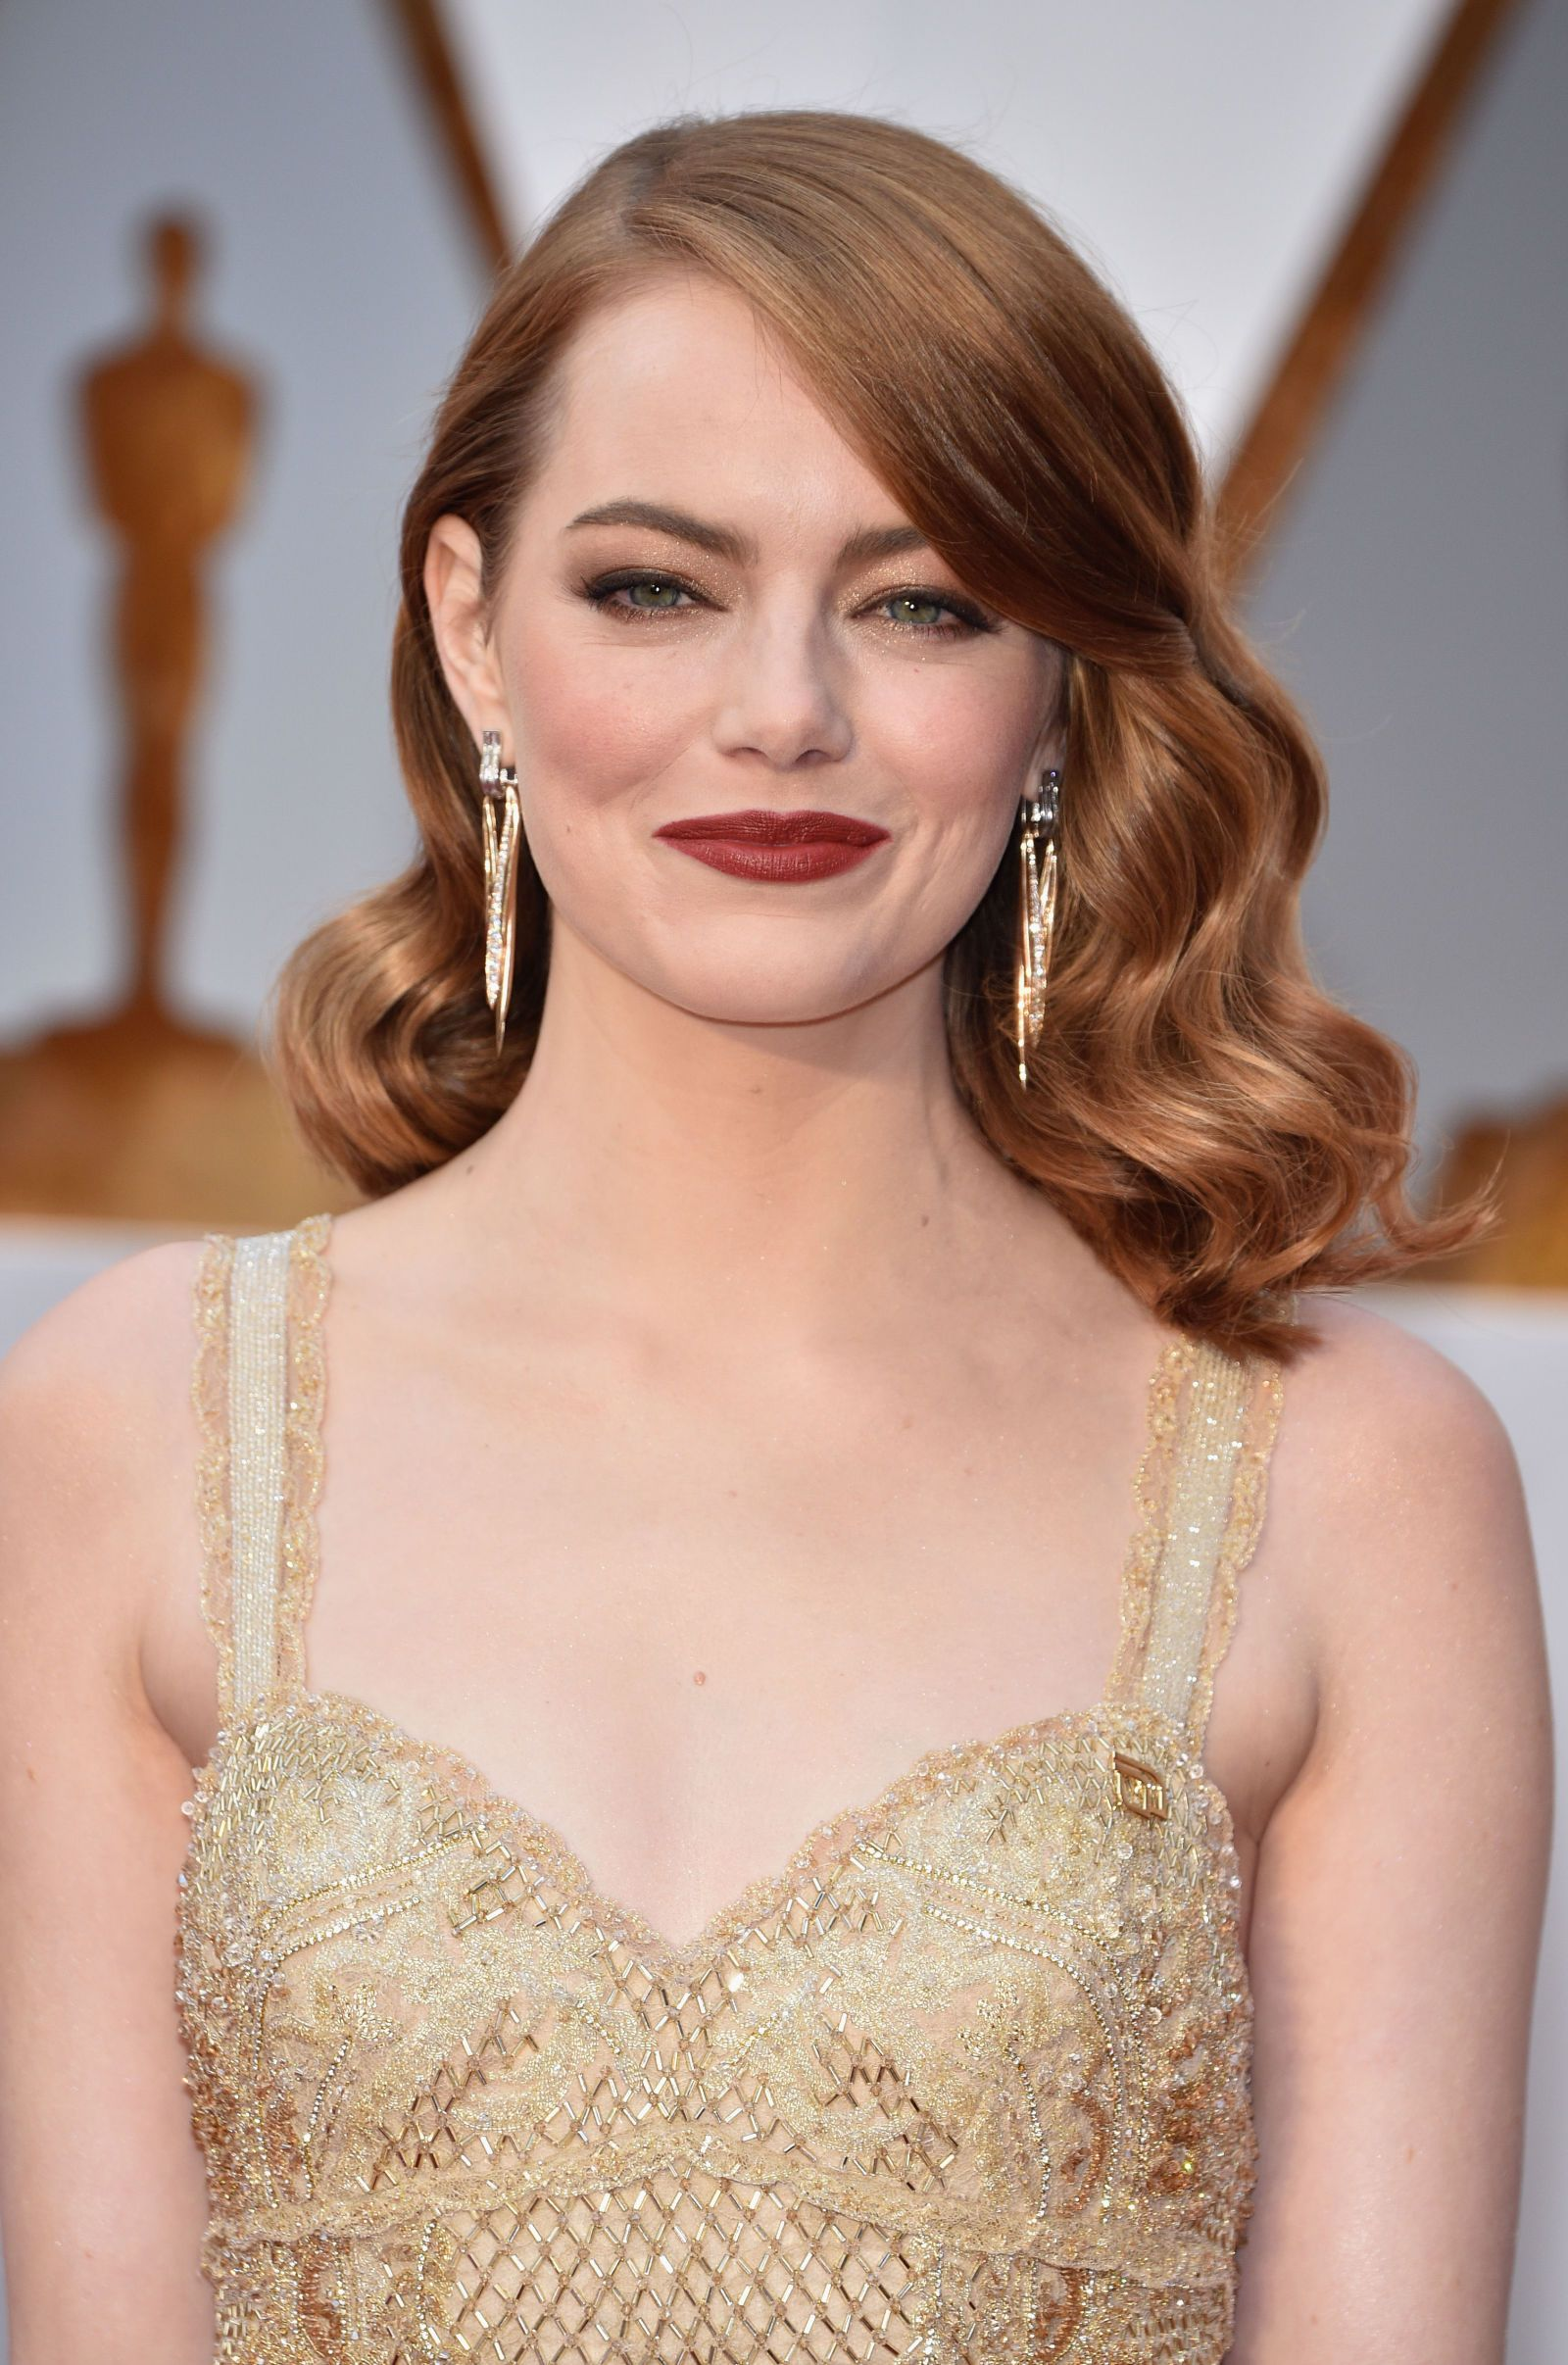 The 13 Best Beauty Looks From the 2017 Oscars